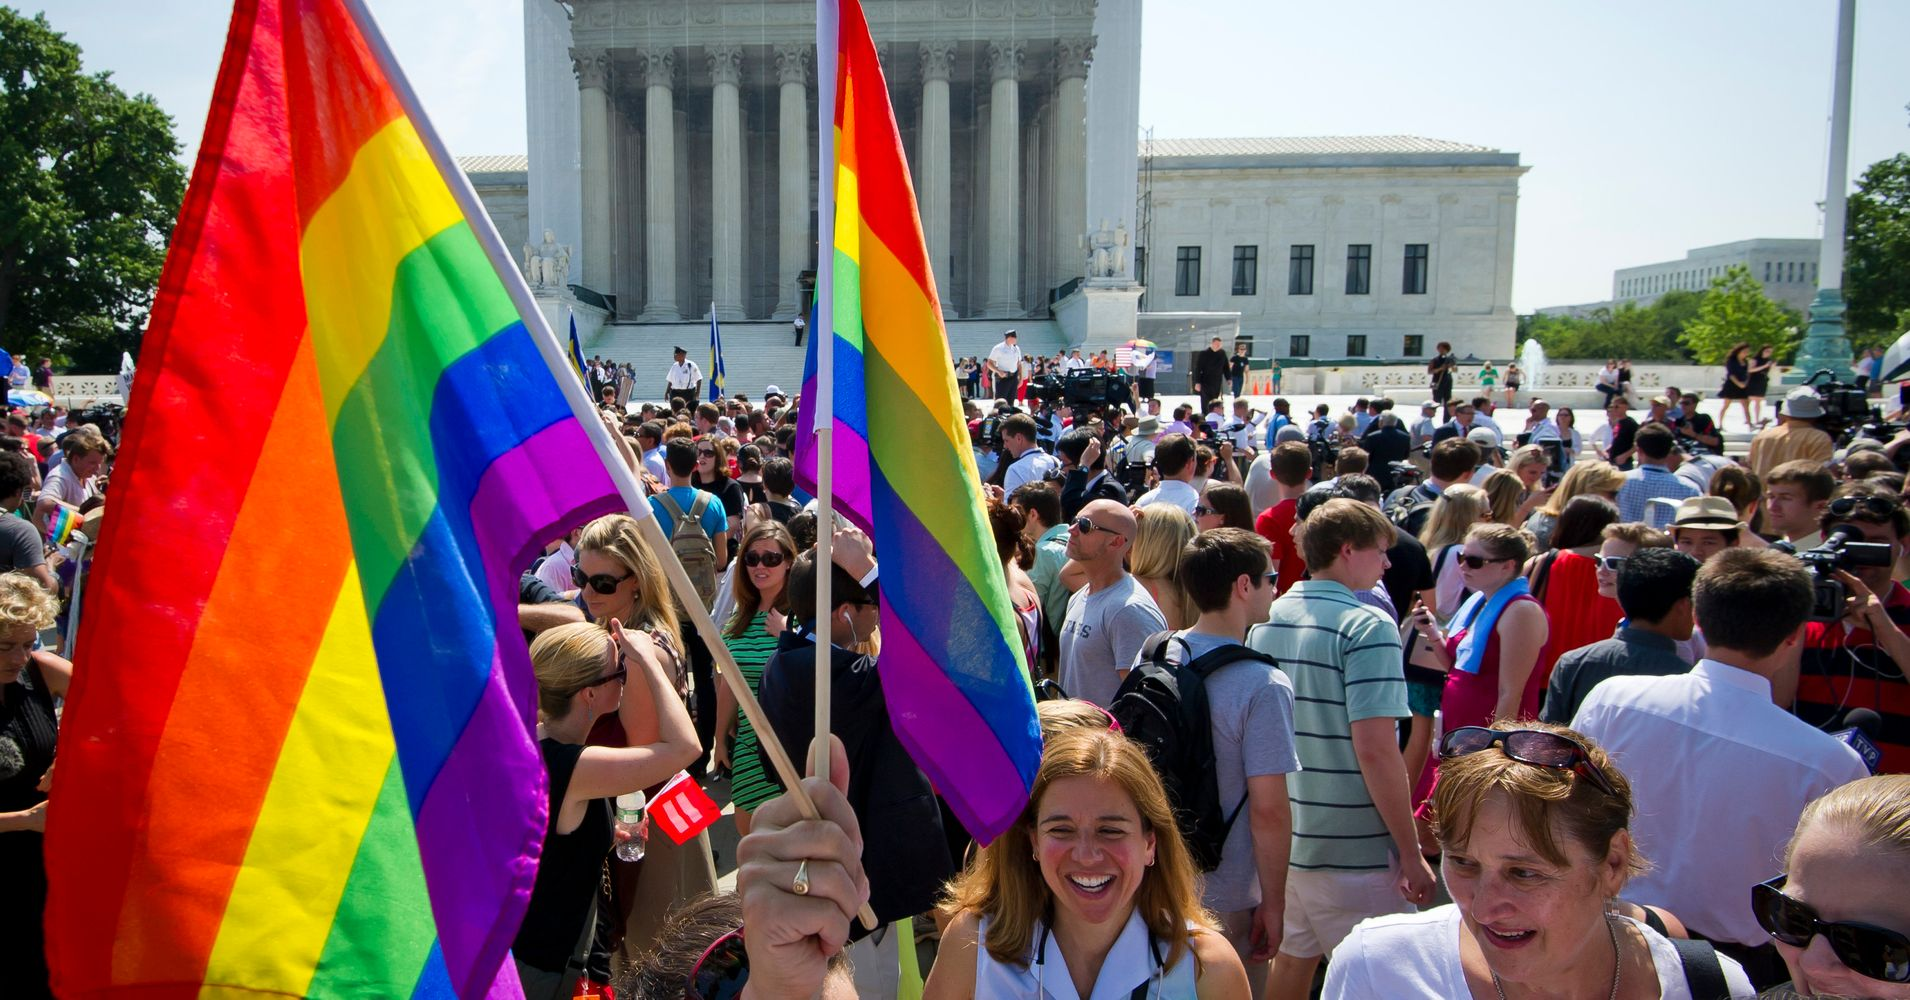 Gay marriage is legalized